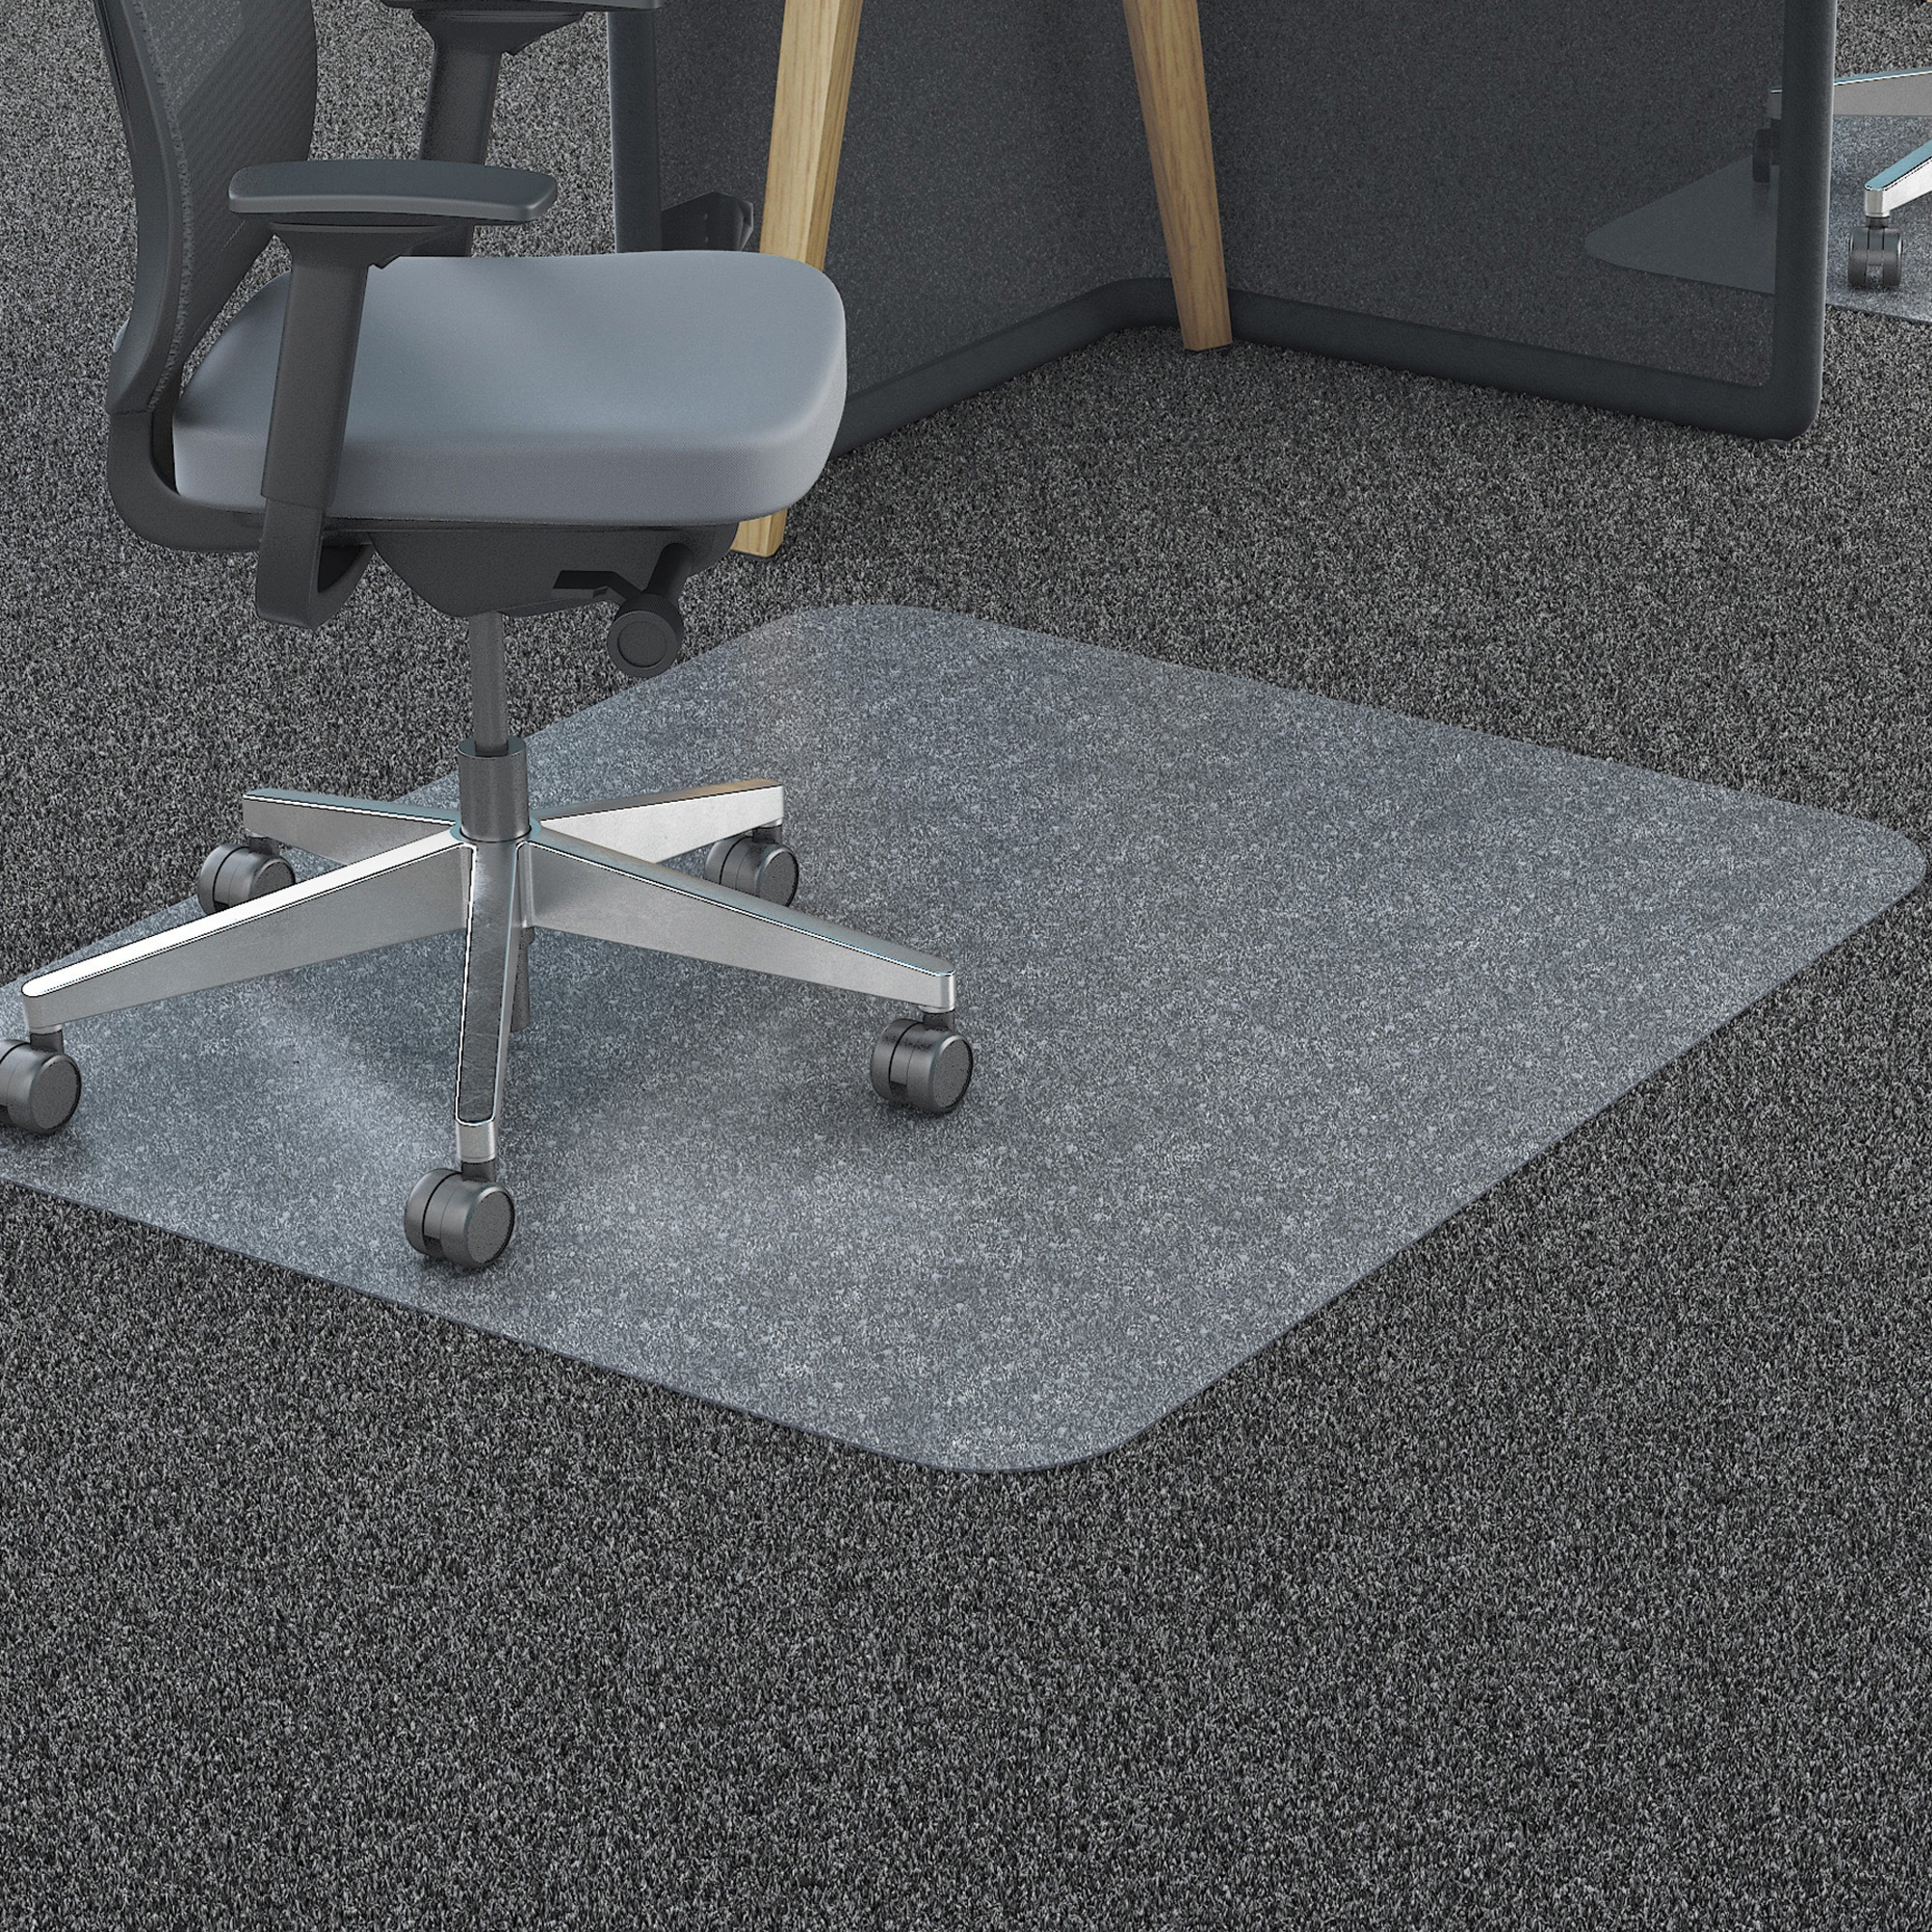 Deflecto 36 x 48 Chair Mat for Carpet and Hard Floor, Rectangular